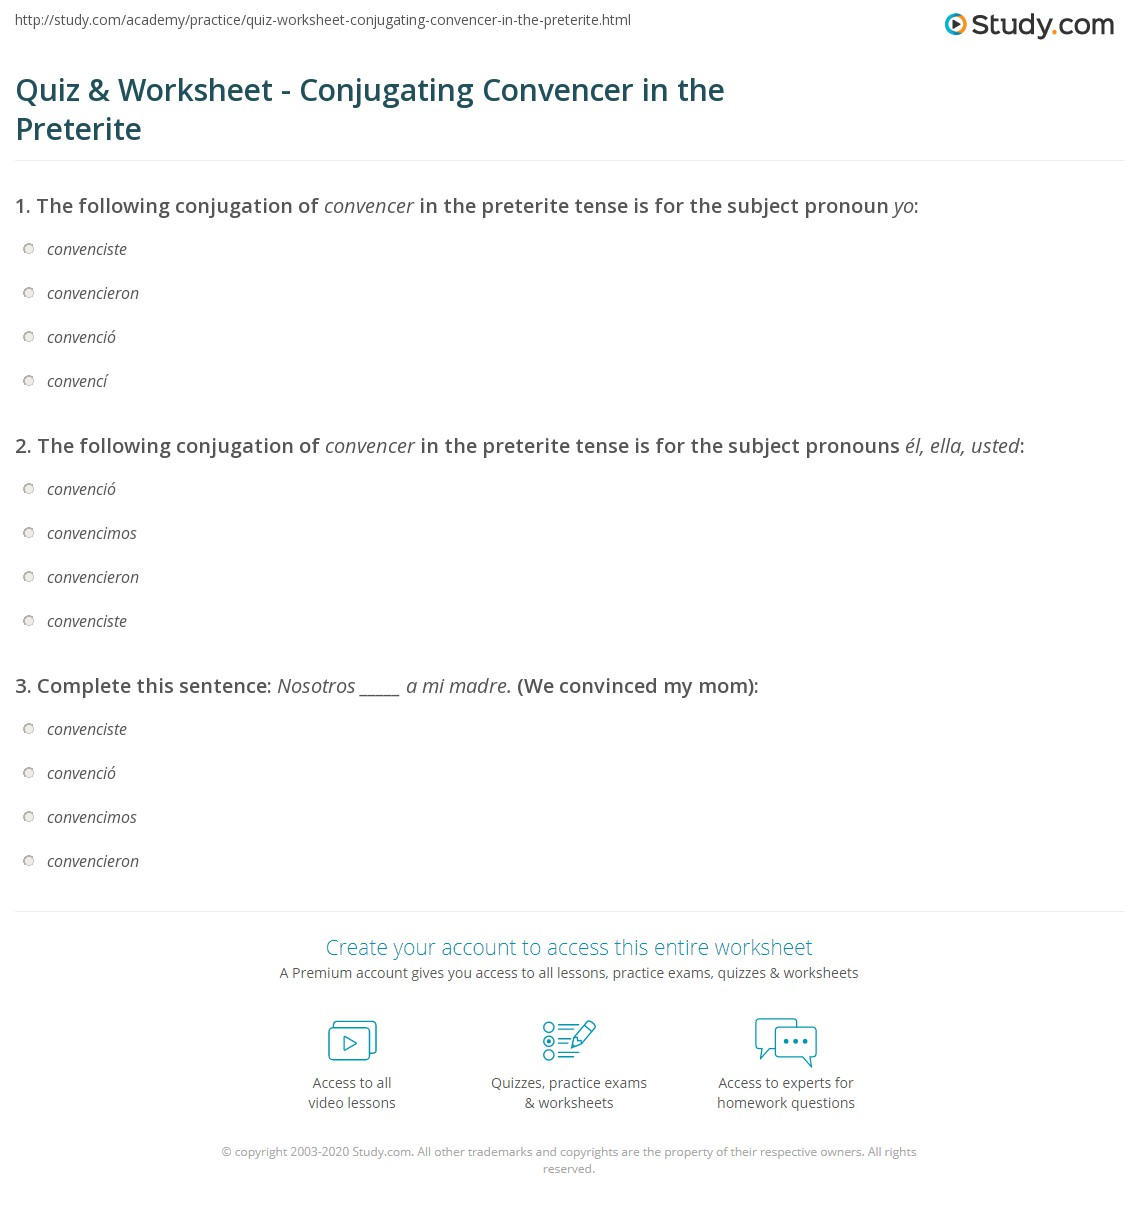 Quiz Worksheet Conjugating Convencer in the Preterite – Preterite Practice Worksheet